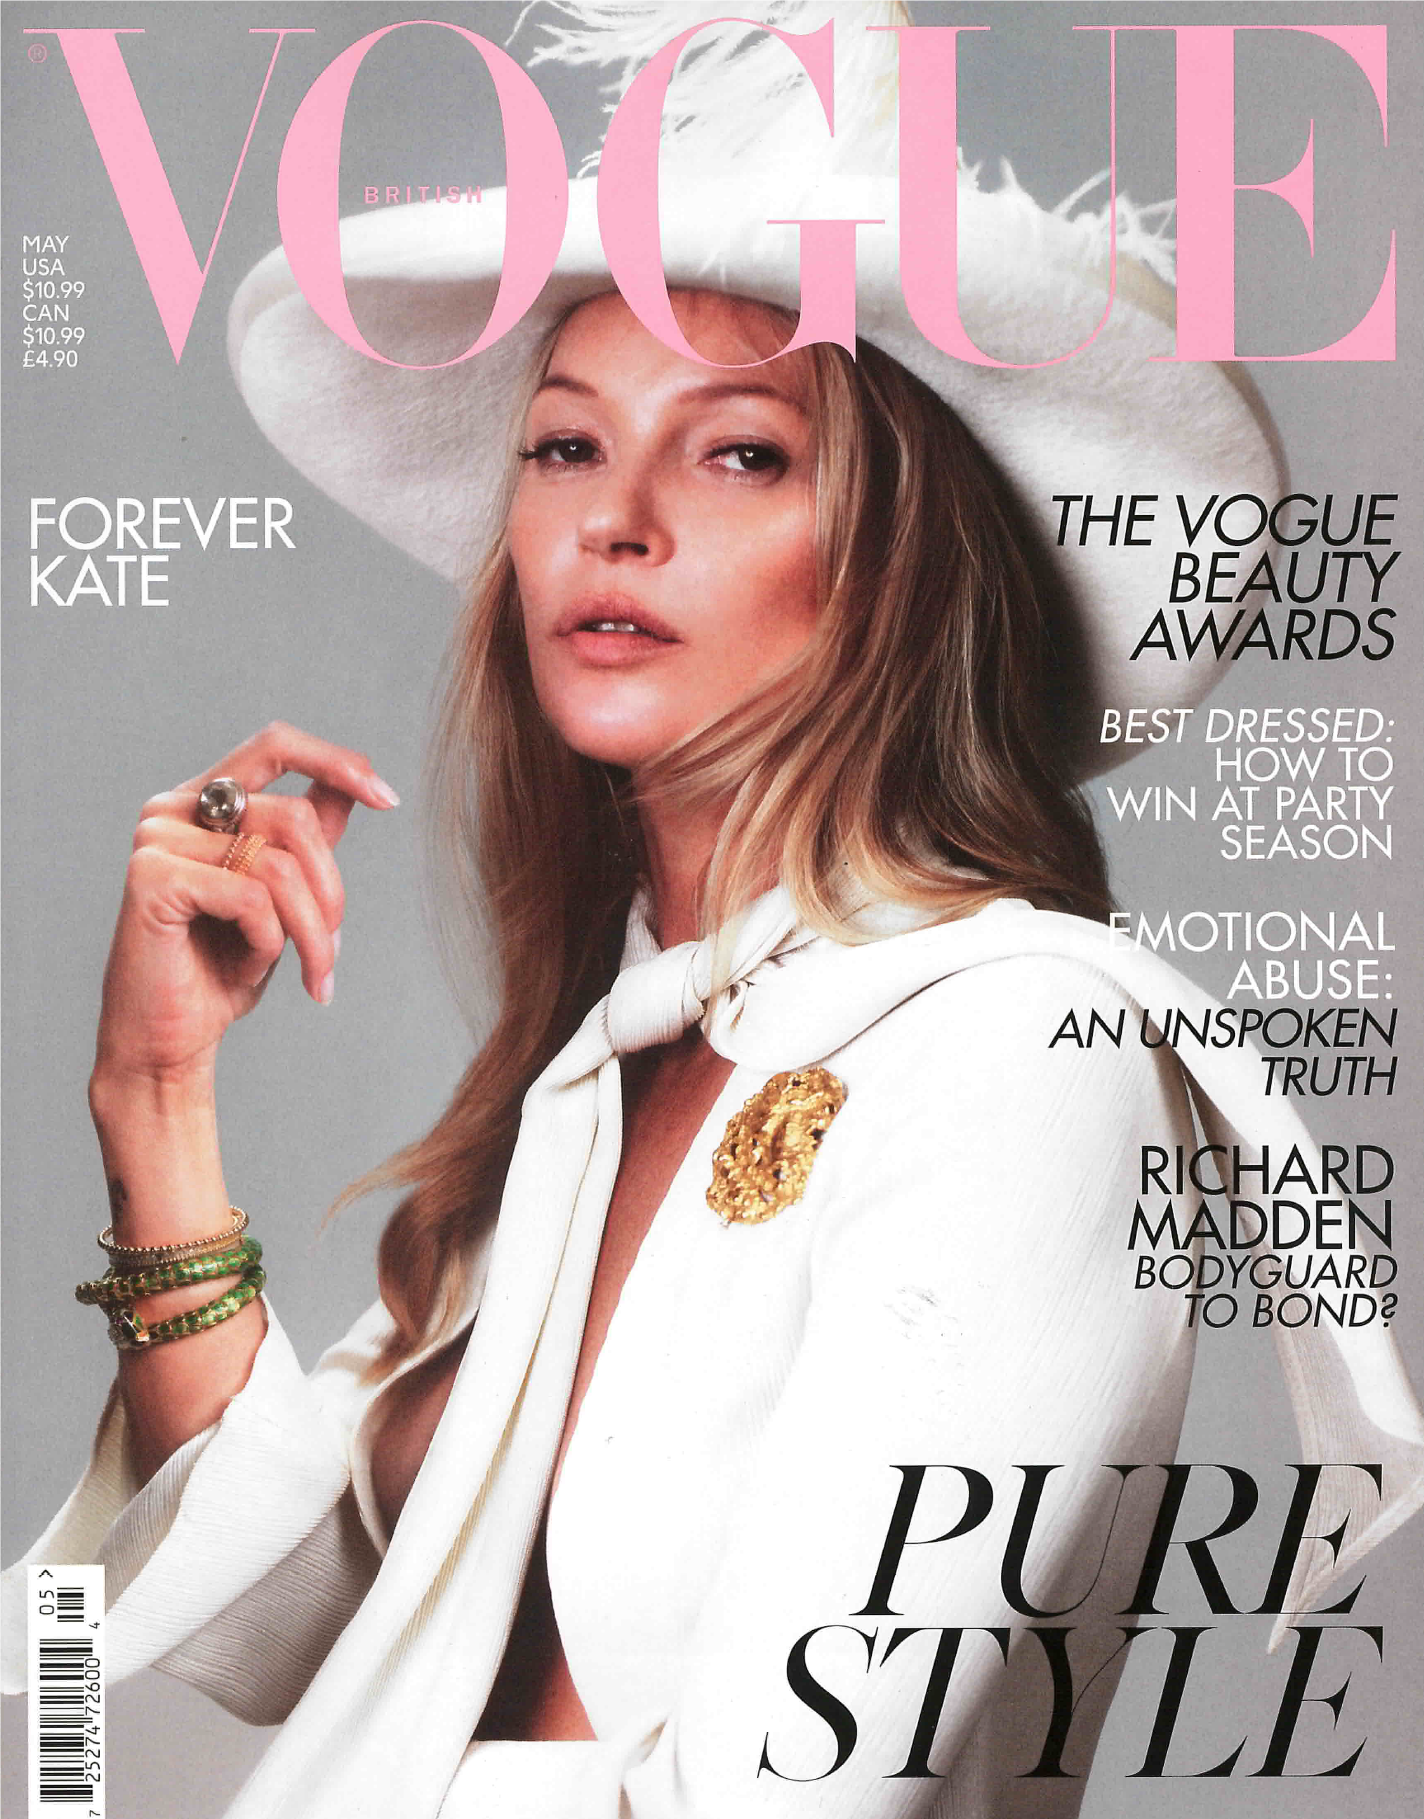 VOGUE UK MAY 2019 ISSUE